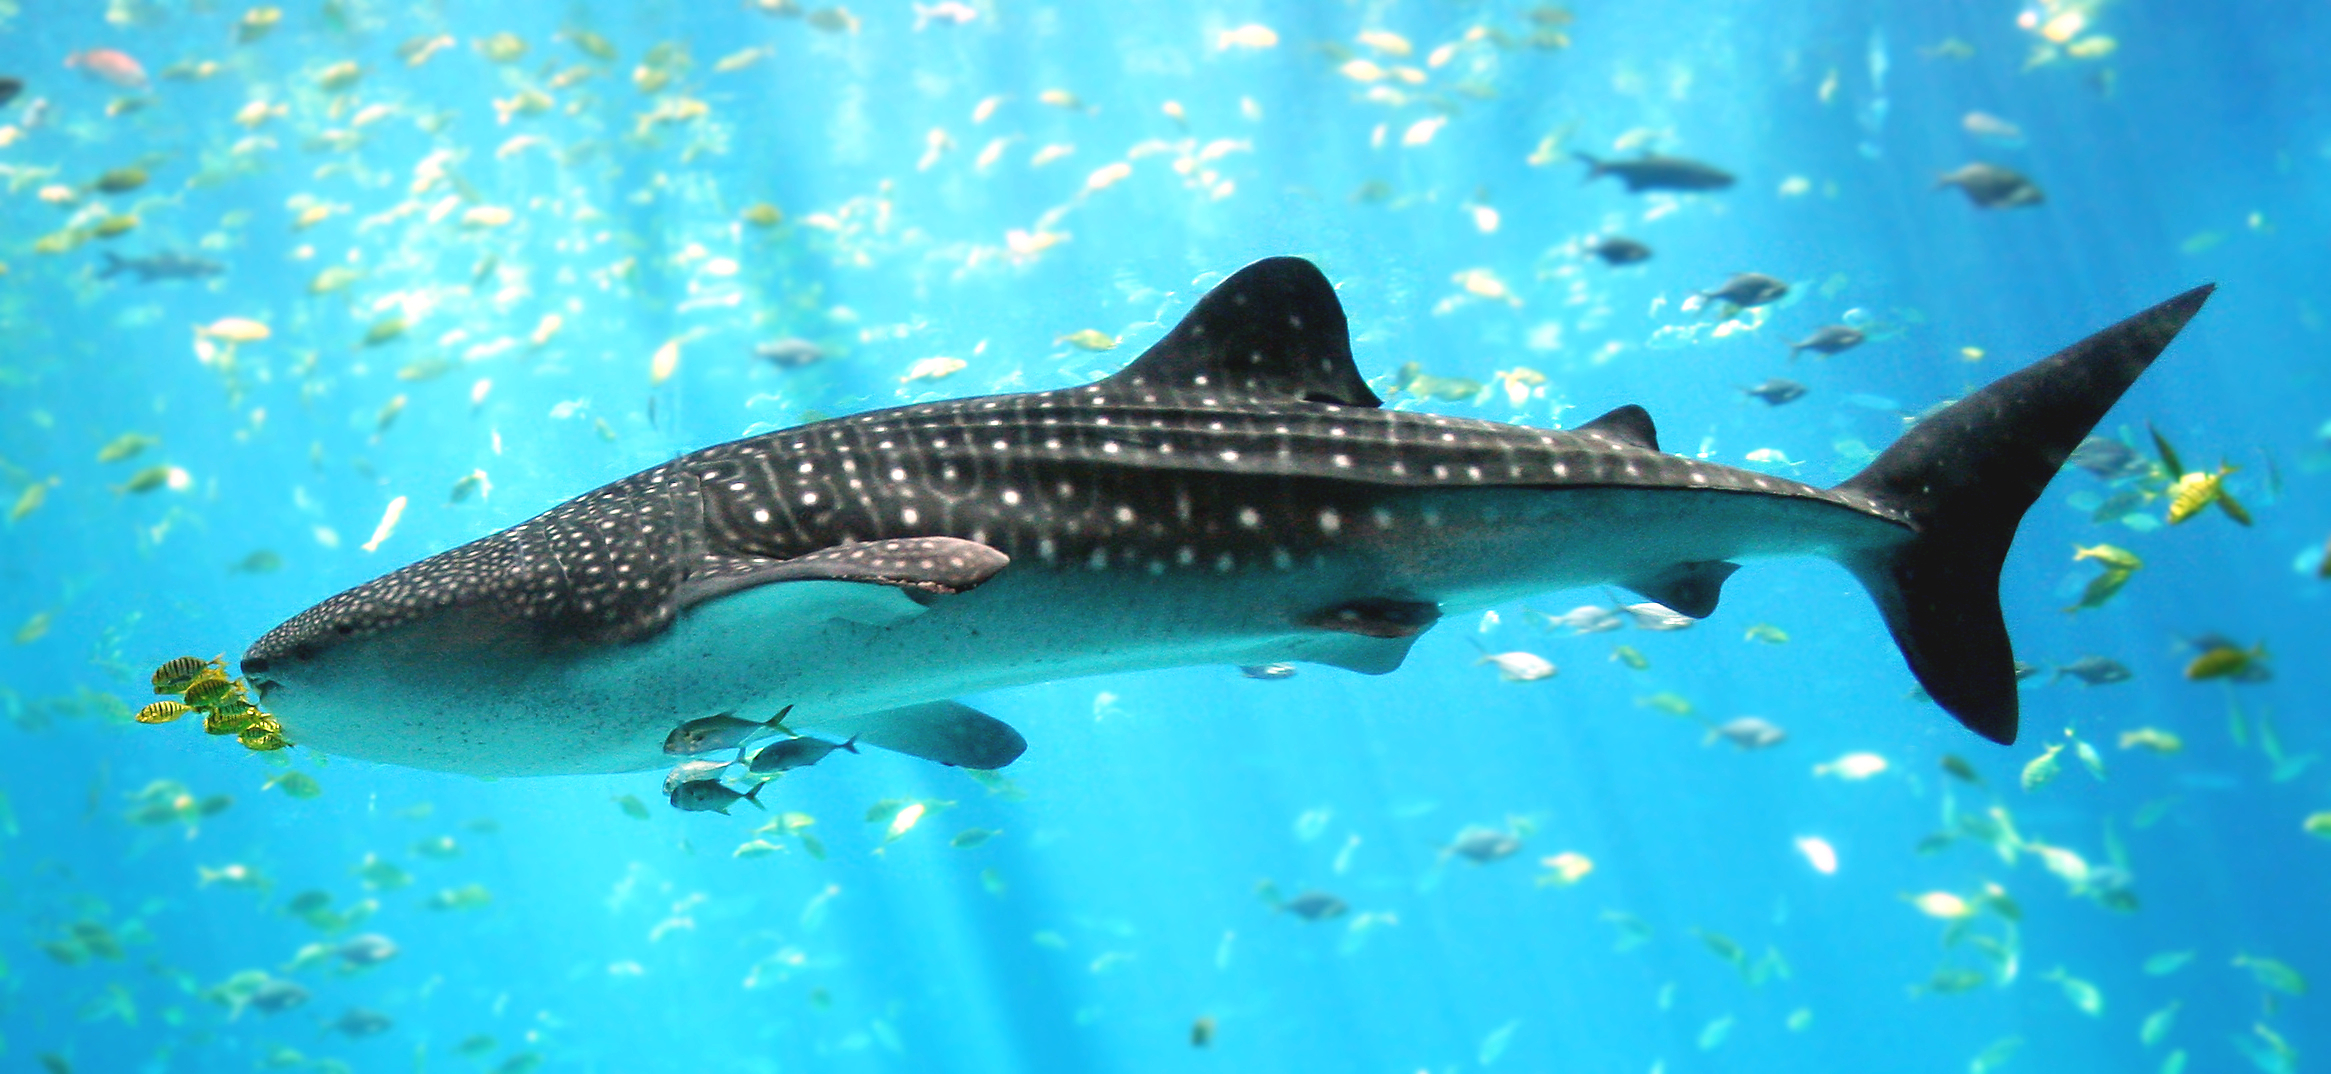 https://upload.wikimedia.org/wikipedia/commons/f/f1/Whale_shark_Georgia_aquarium.jpg